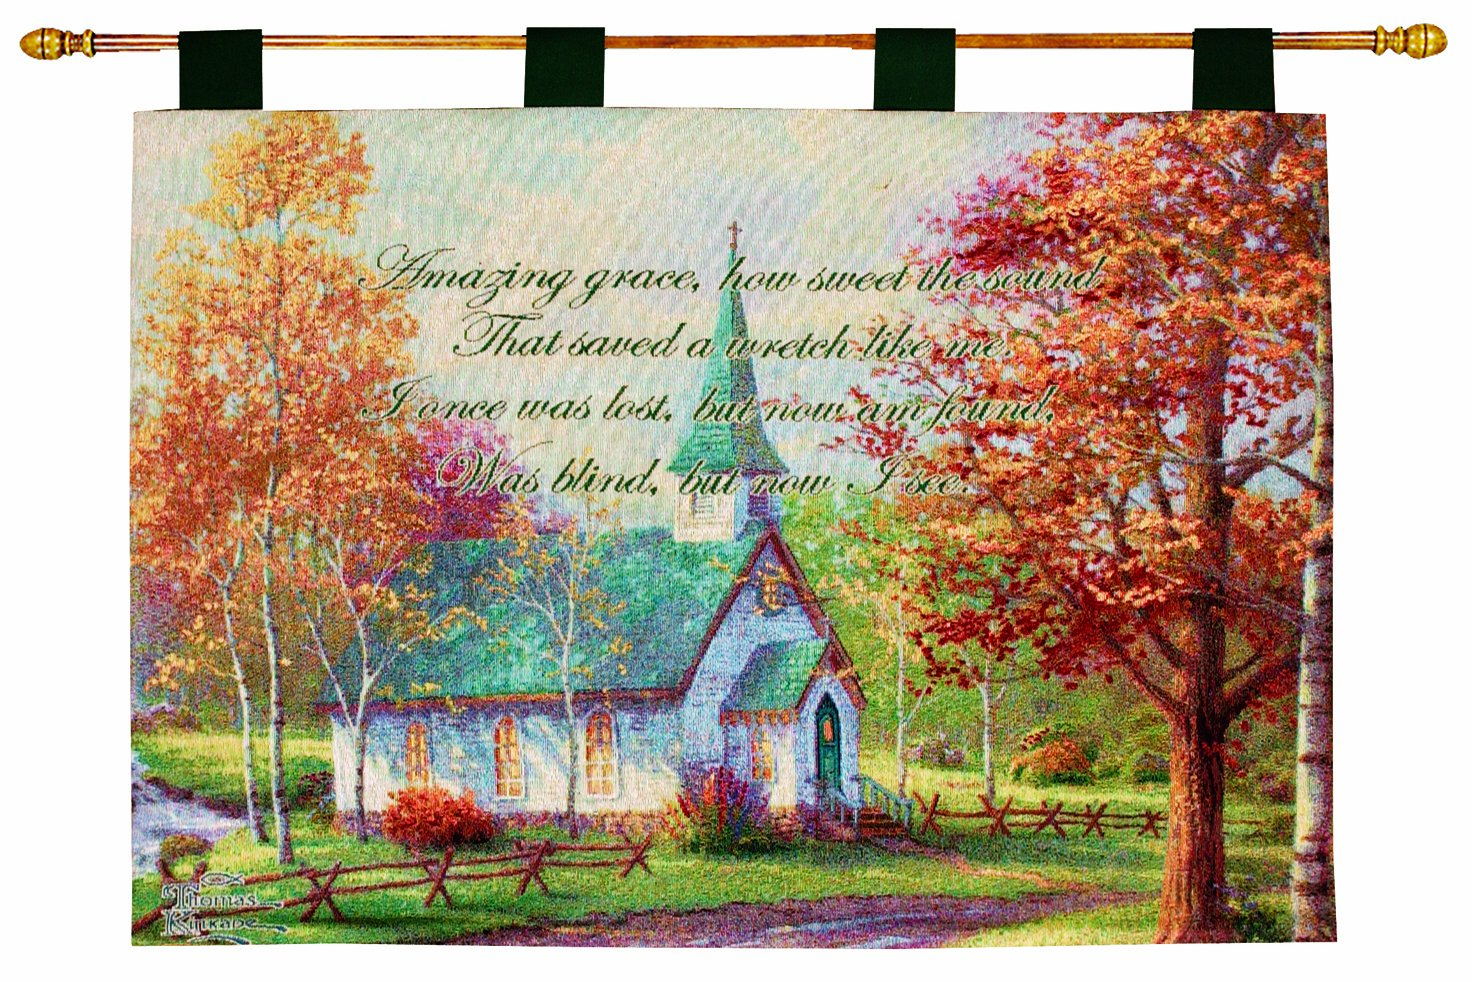 Manual Inspirational Collection Wall Hanging and Finial Rod, Chapel in The Woods with Verse by Thomas Kinkade, 36 X 26-Inch